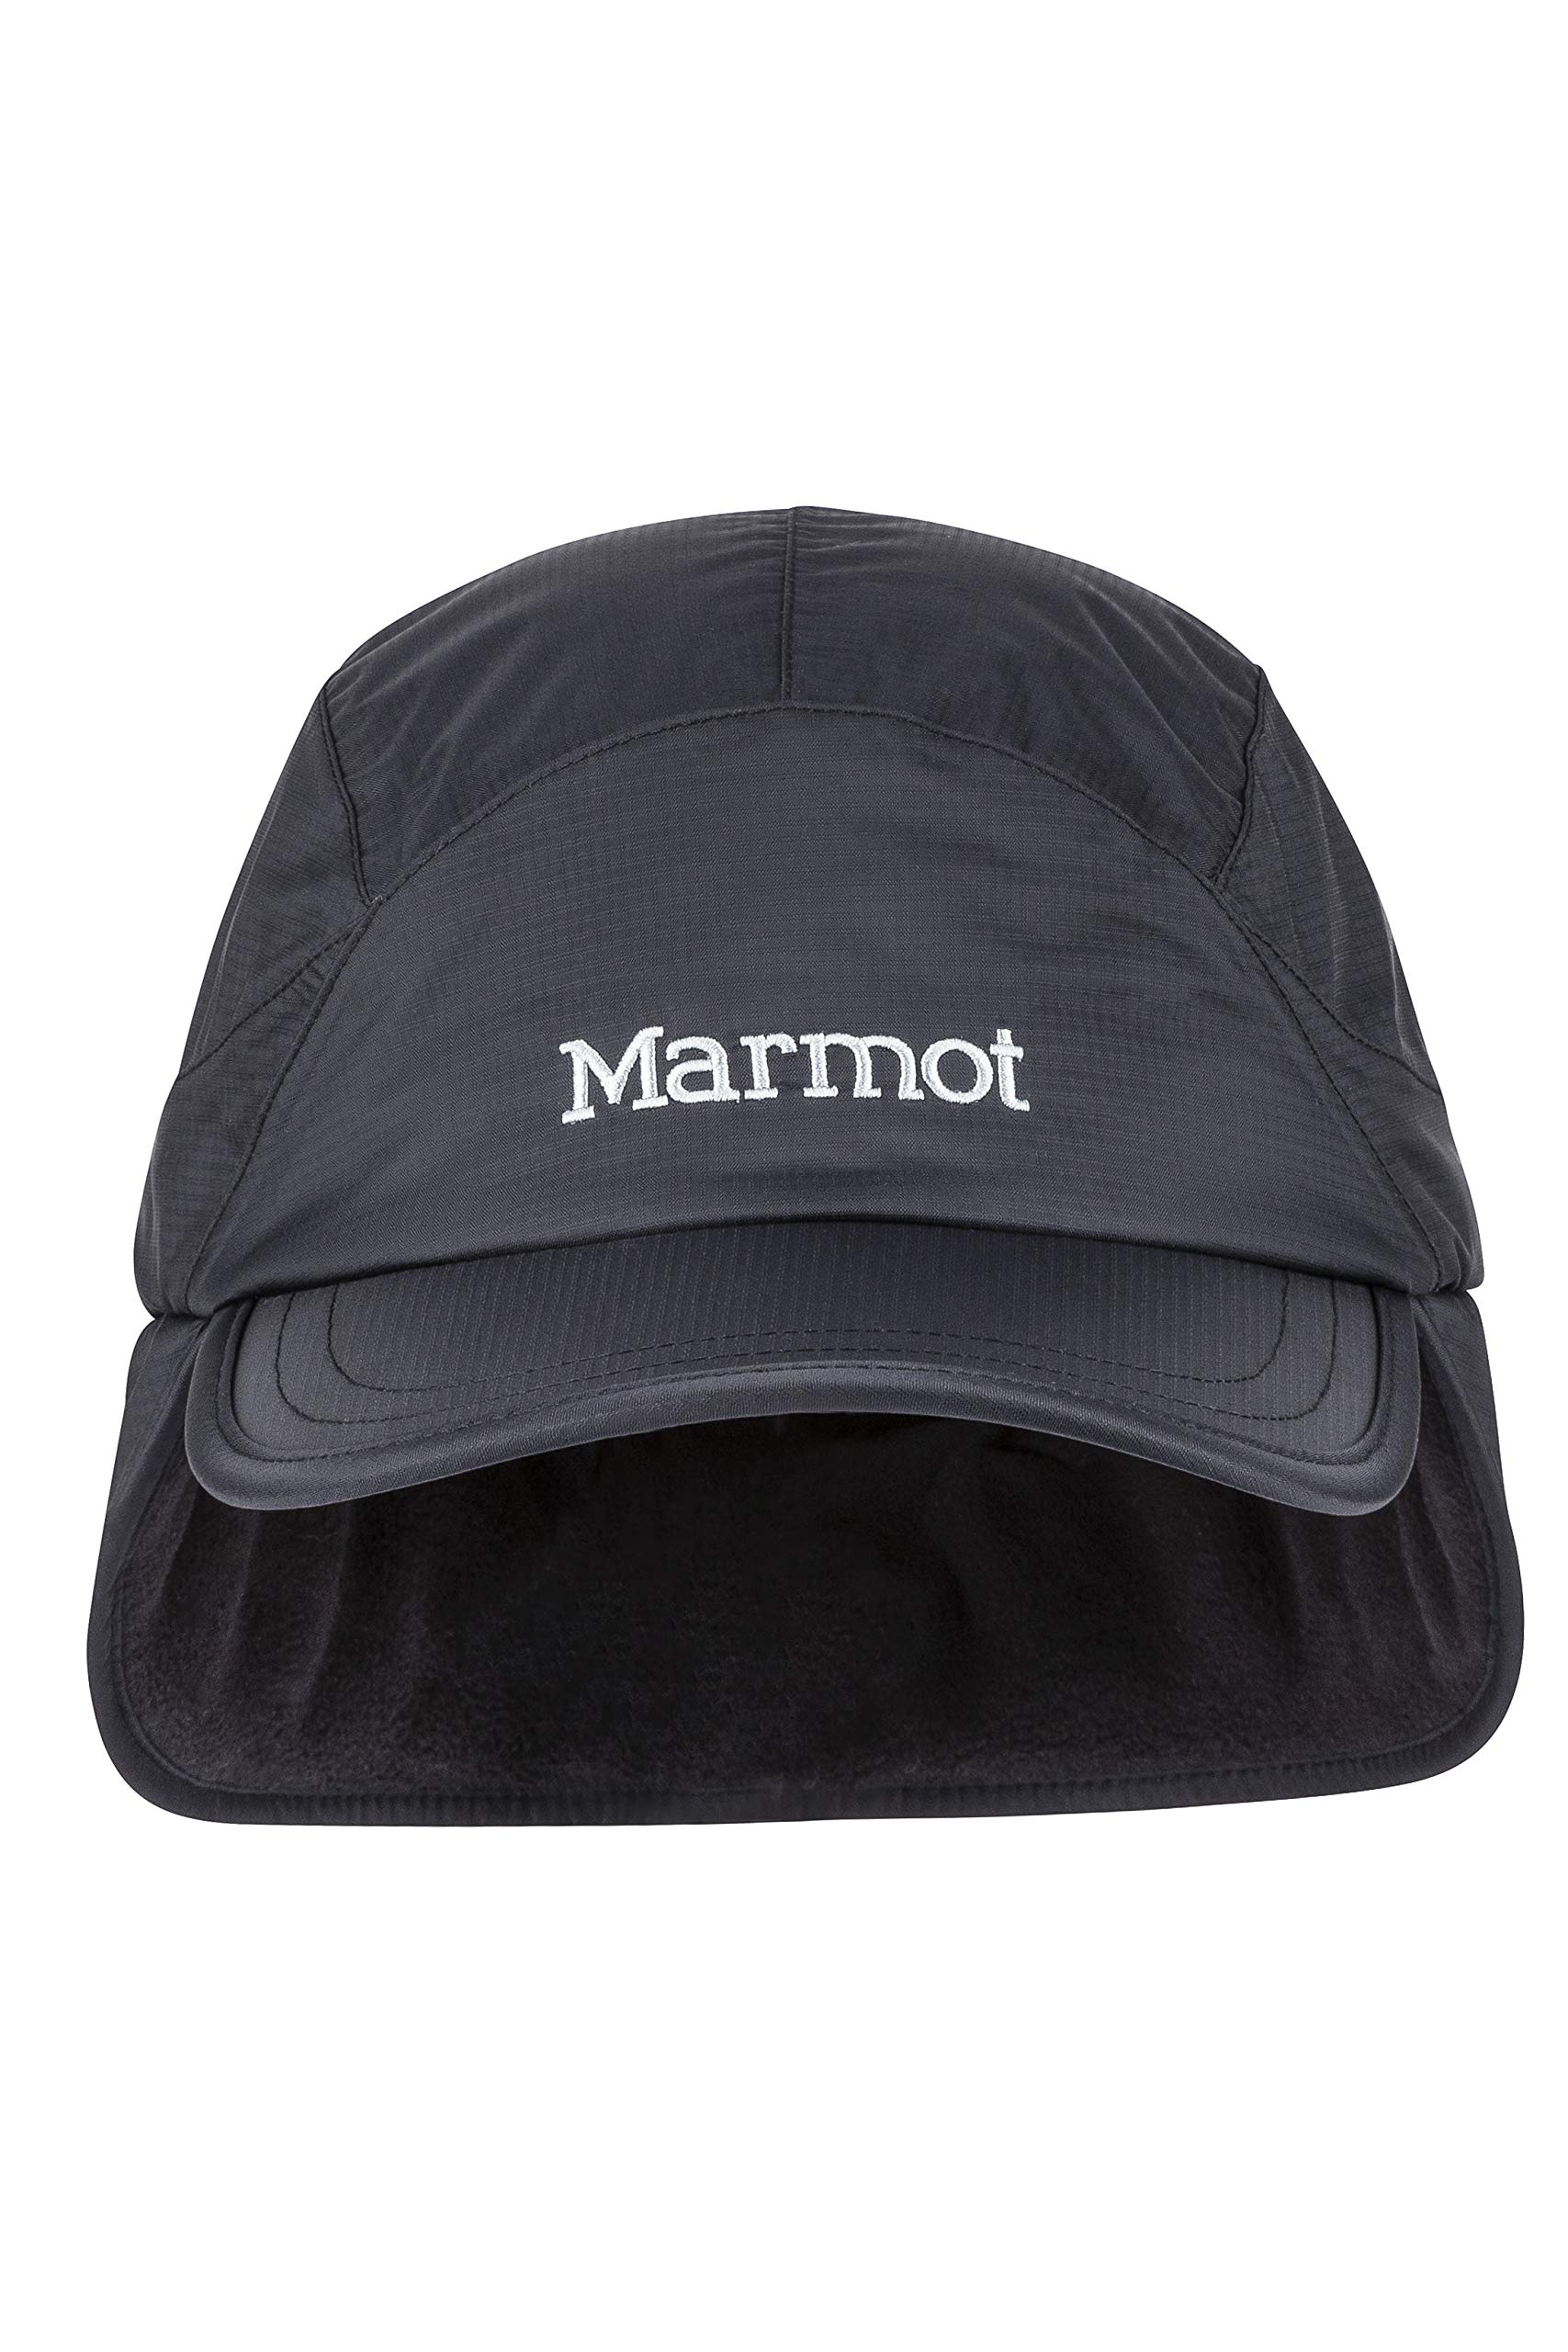 Marmot Super Hero Balaclava Black Water Resistant and Breathable One Size Windproof Ski and Snowboard Storm Mask